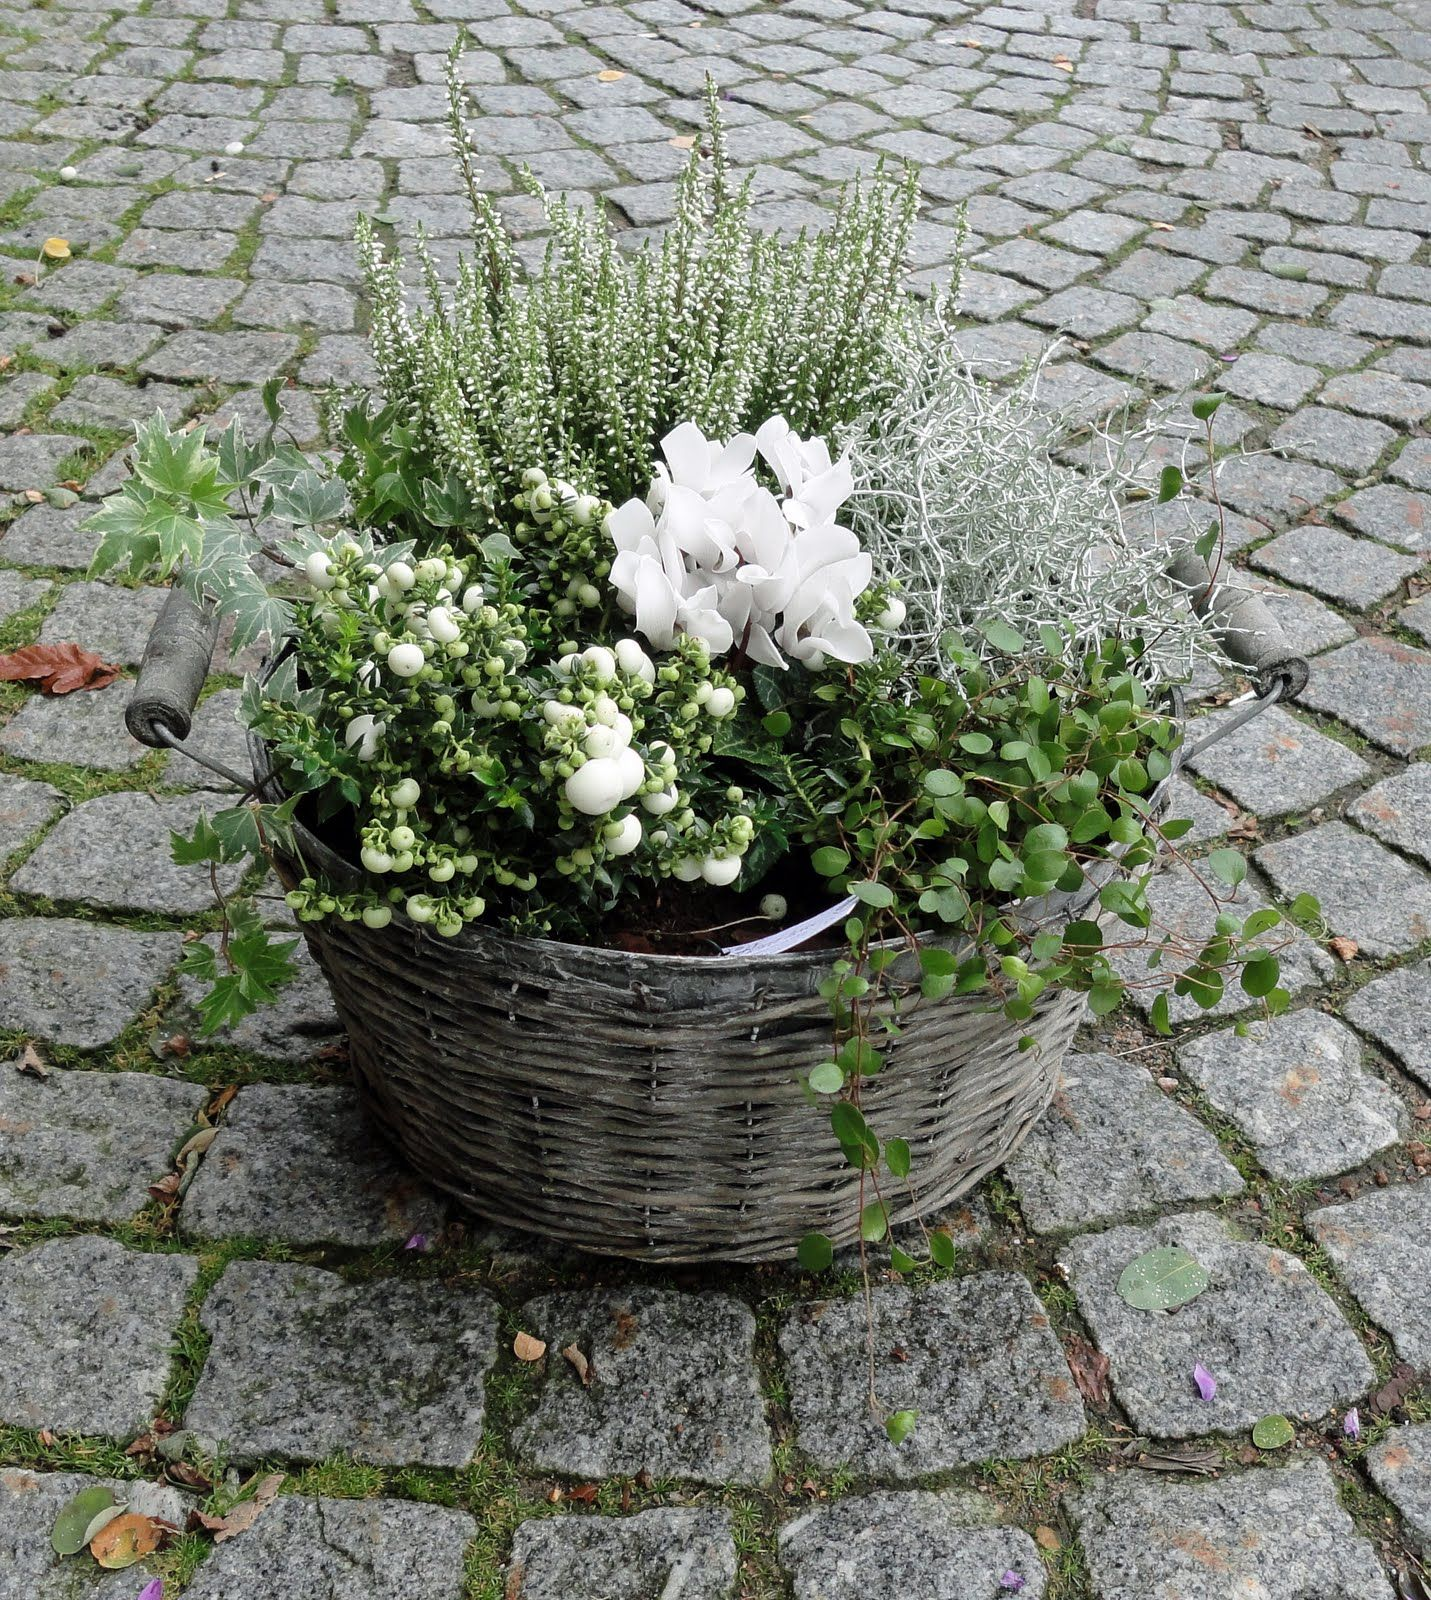 Aiheeseen liittyv kuva fall container gardening for Jardineria al aire libre casa pendiente